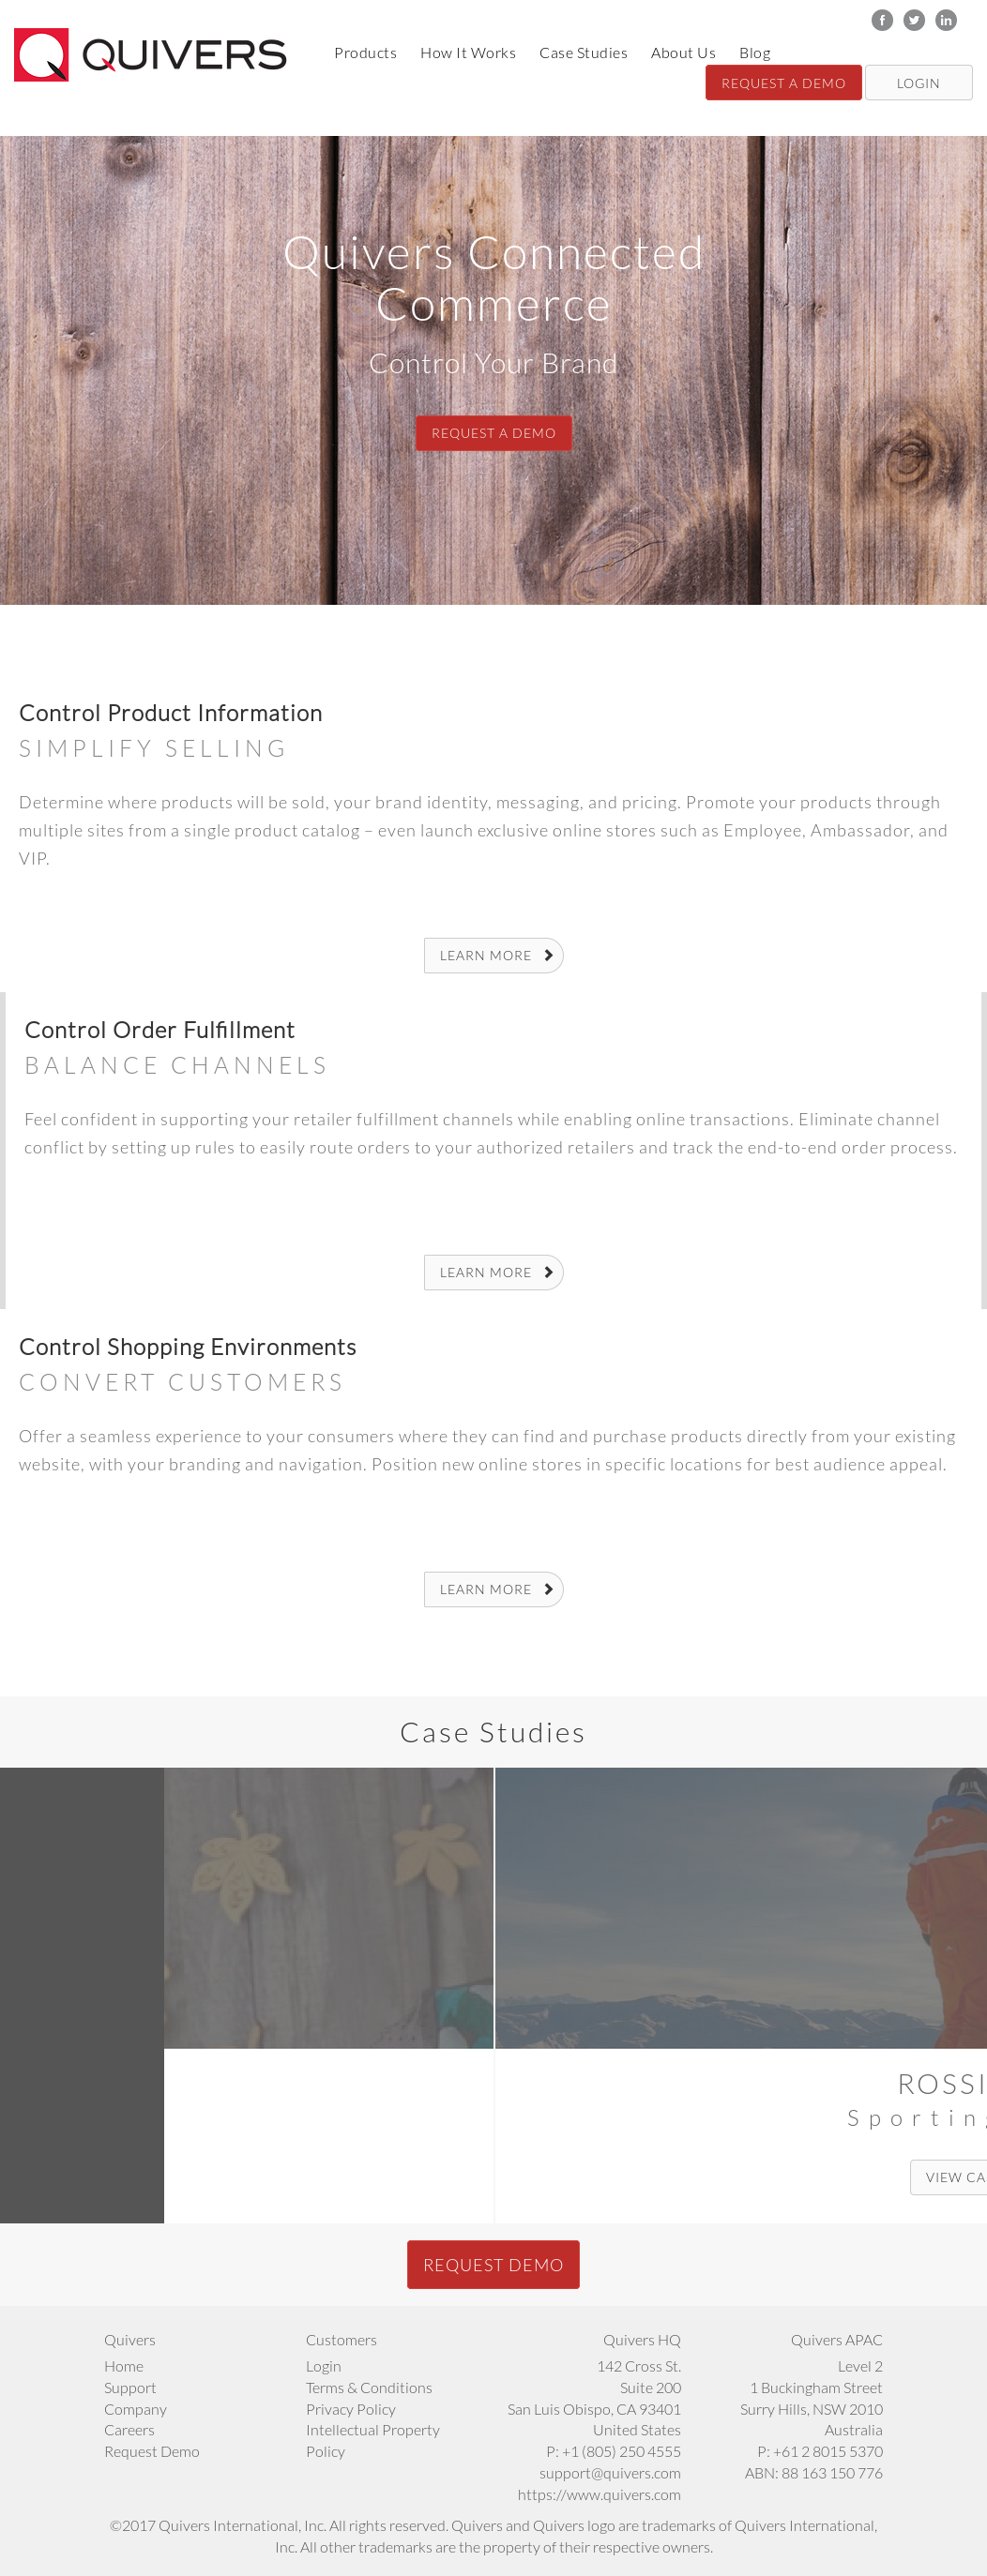 channel conflict case study